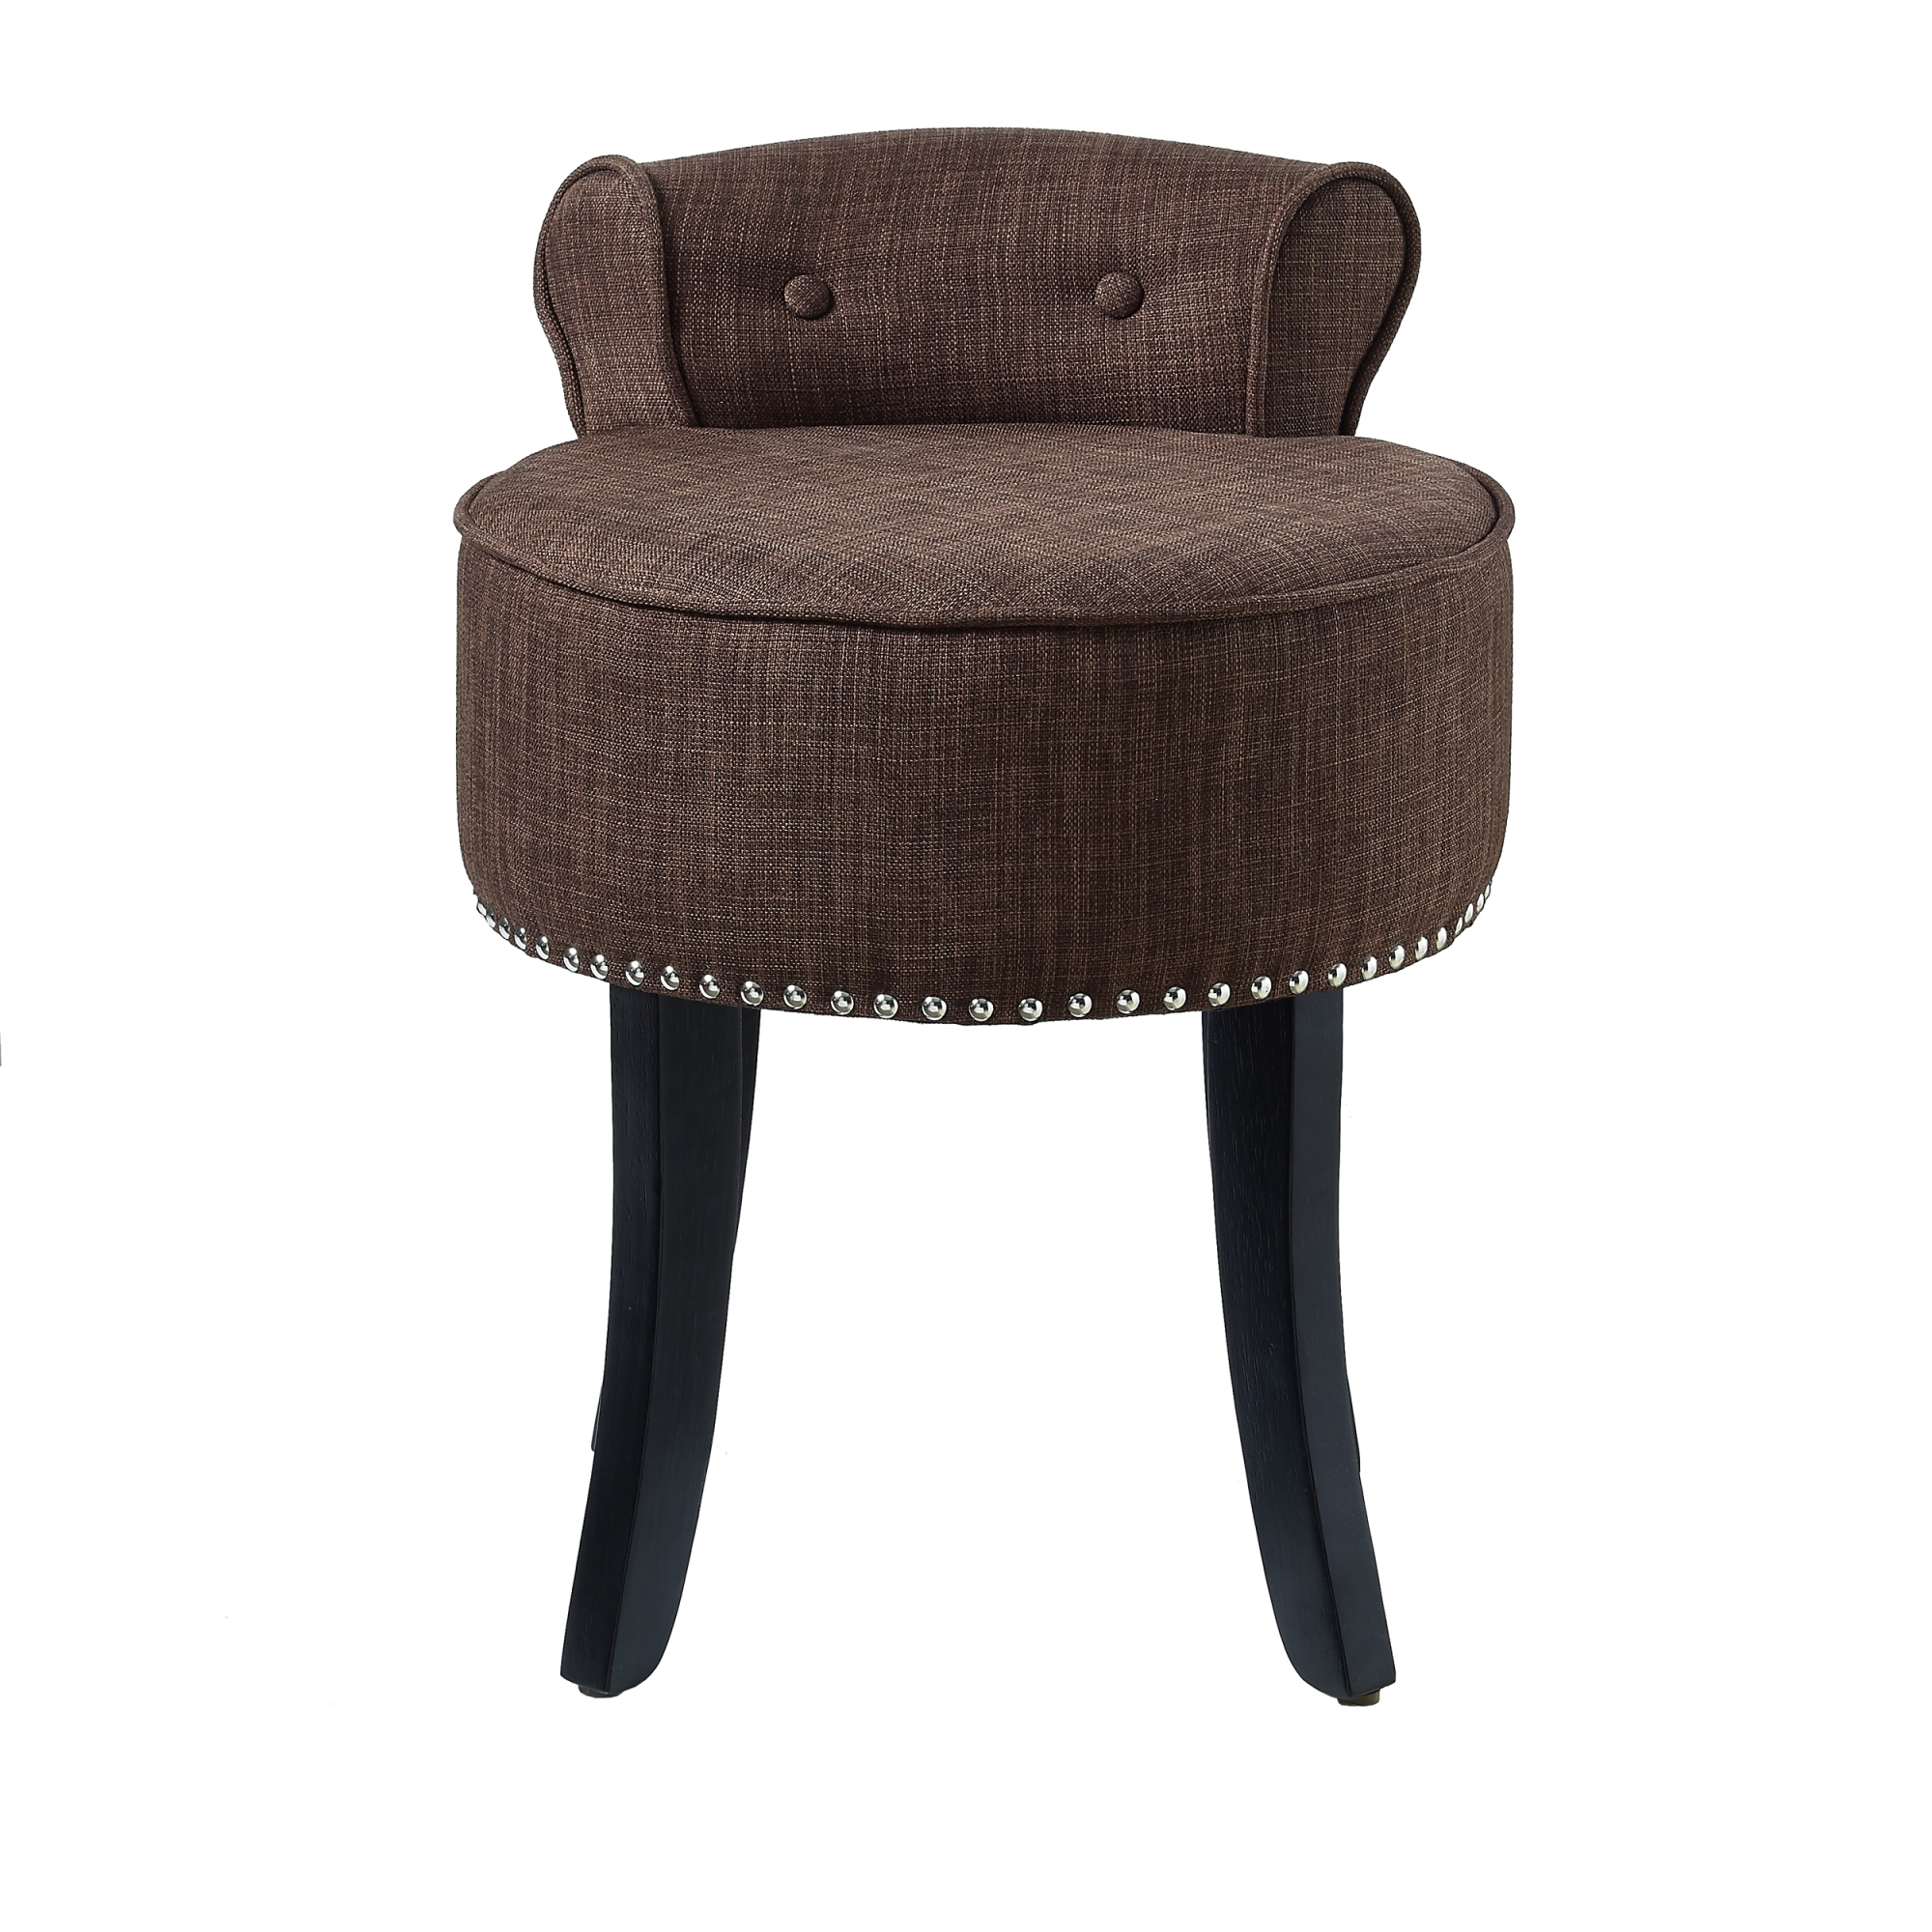 Vanity stools with back Trim Rolled Clarence Brown Linen Vanity Stool Nailhead Trim Roll Back Bedroom By Inspired Home Walmartcom Walmart Clarence Brown Linen Vanity Stool Nailhead Trim Roll Back